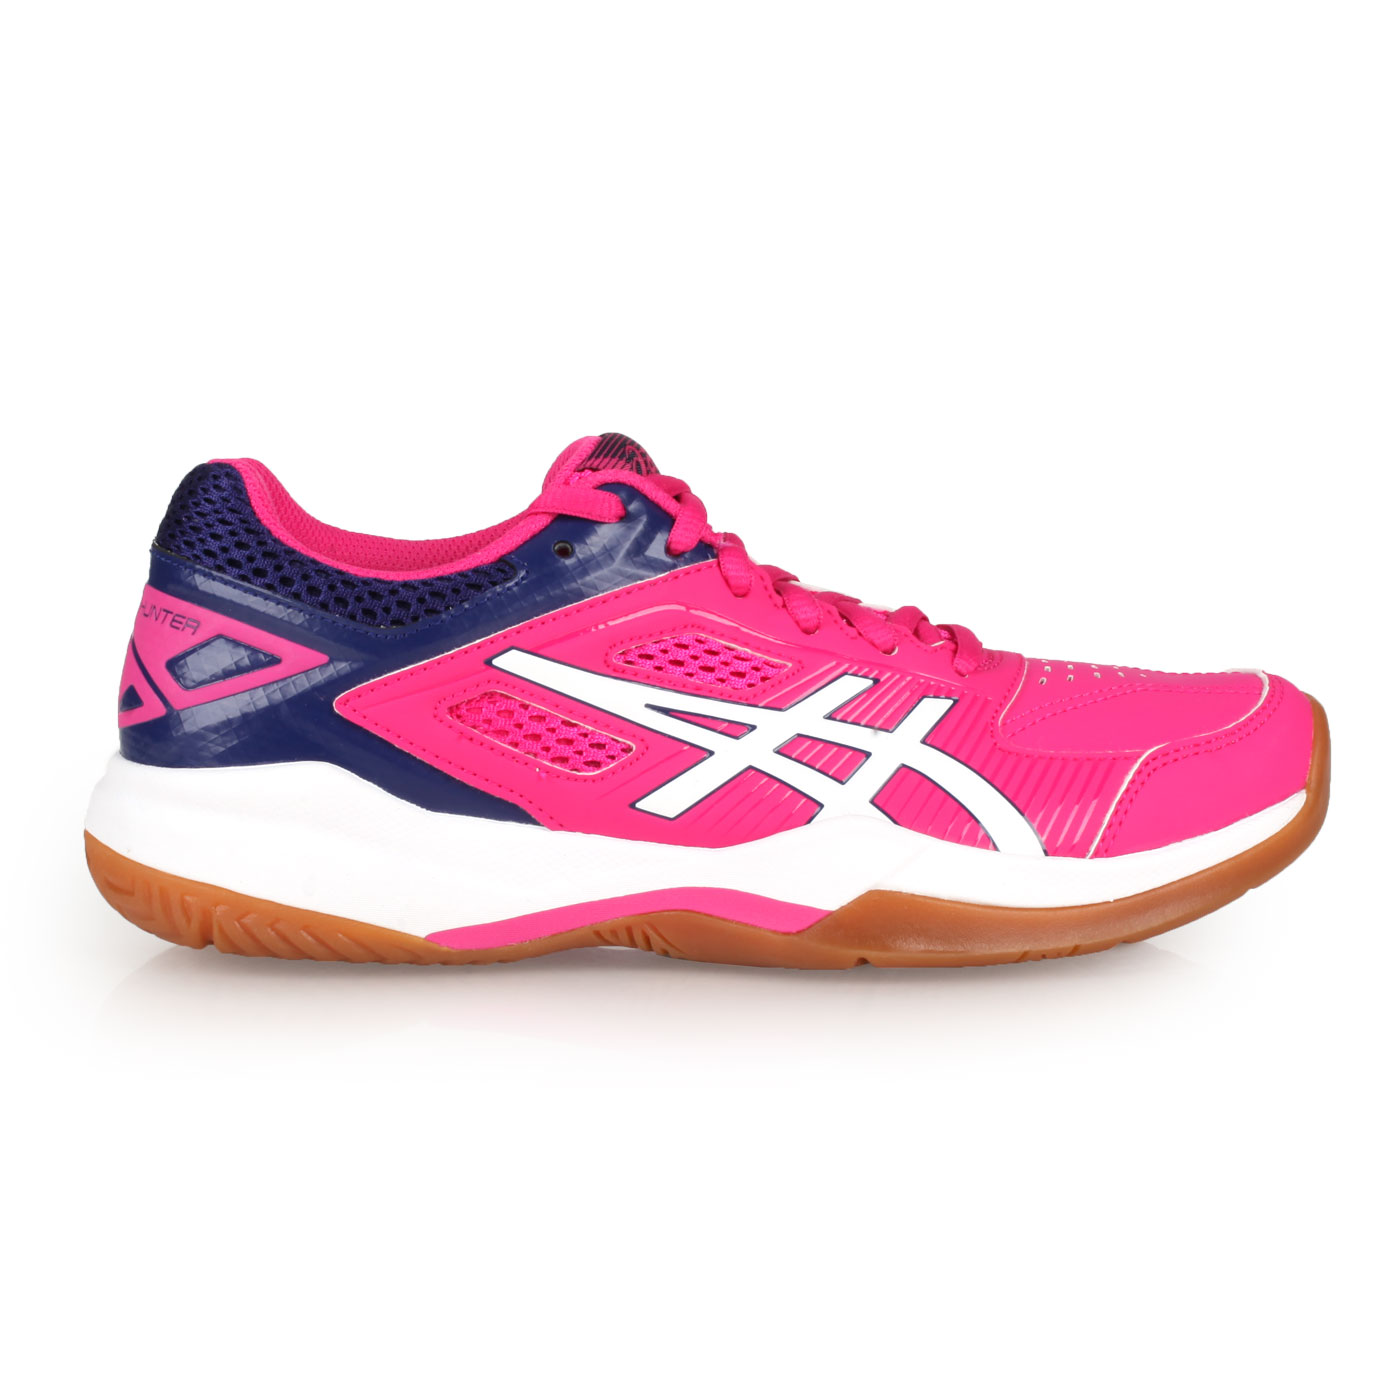 ASICS 女款羽球鞋-2E  @GEL-COURT HUNTER@1072A015-118 - 桃紅丈青白